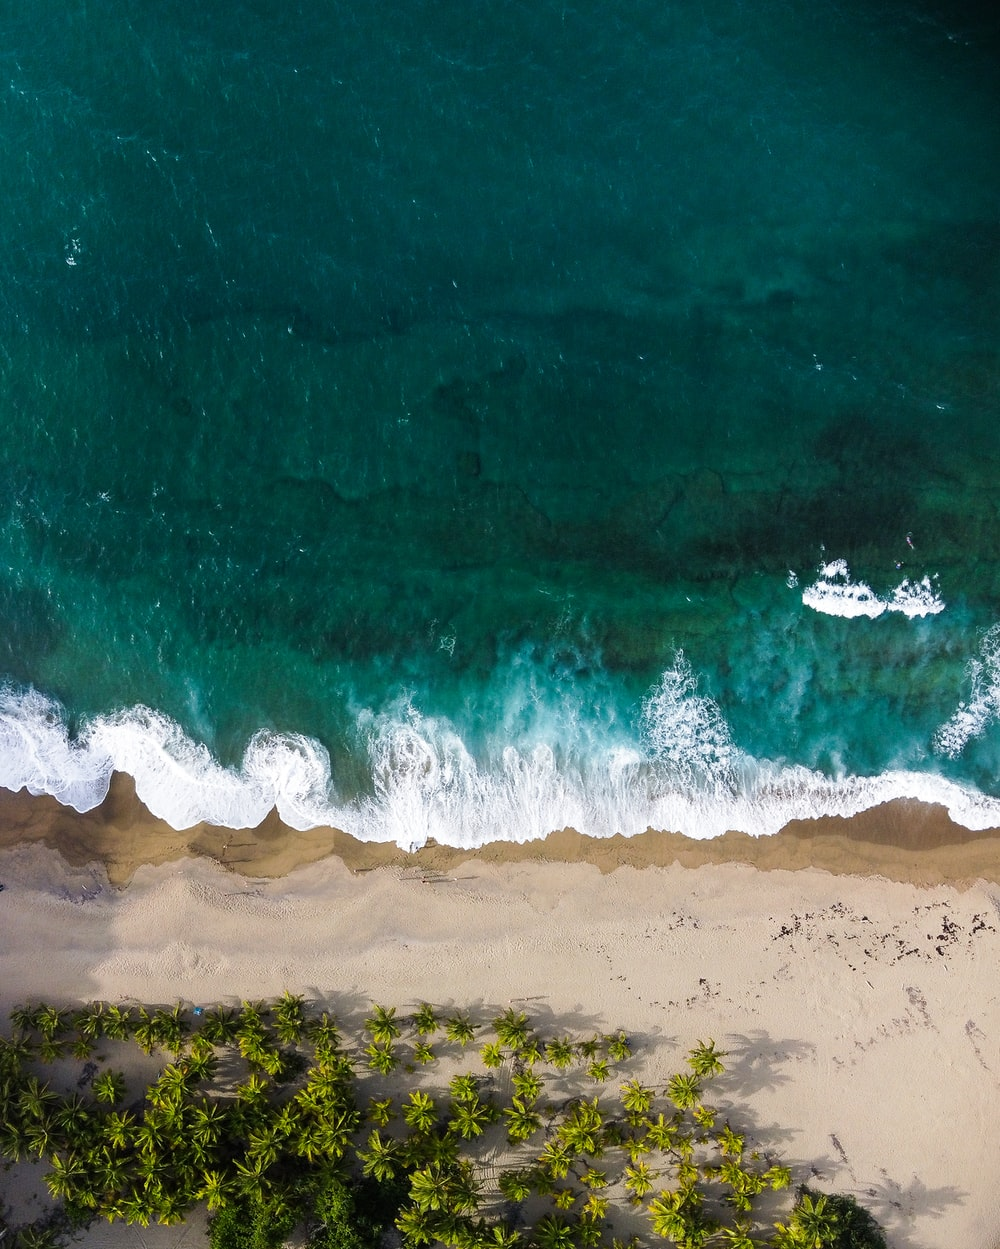 aerial view of ocean waves on shore during daytime